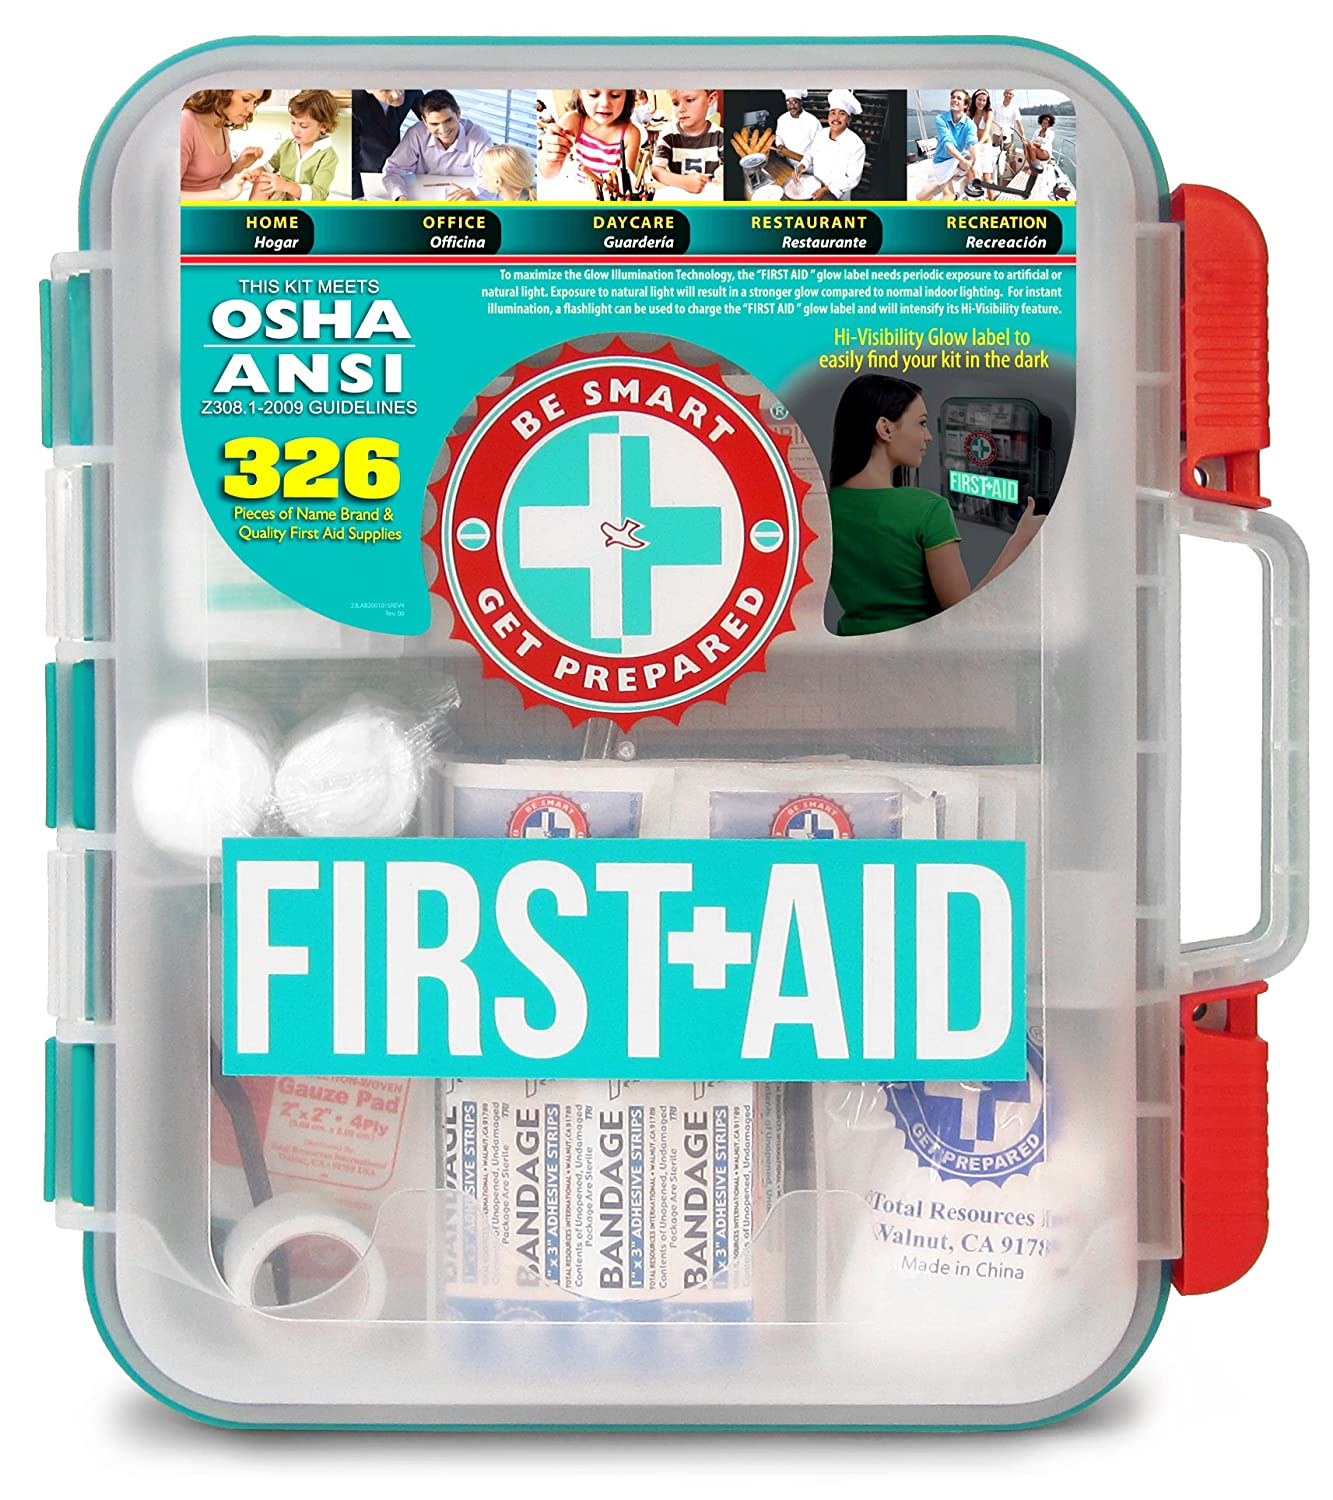 First Aid Kit 326 Pieces